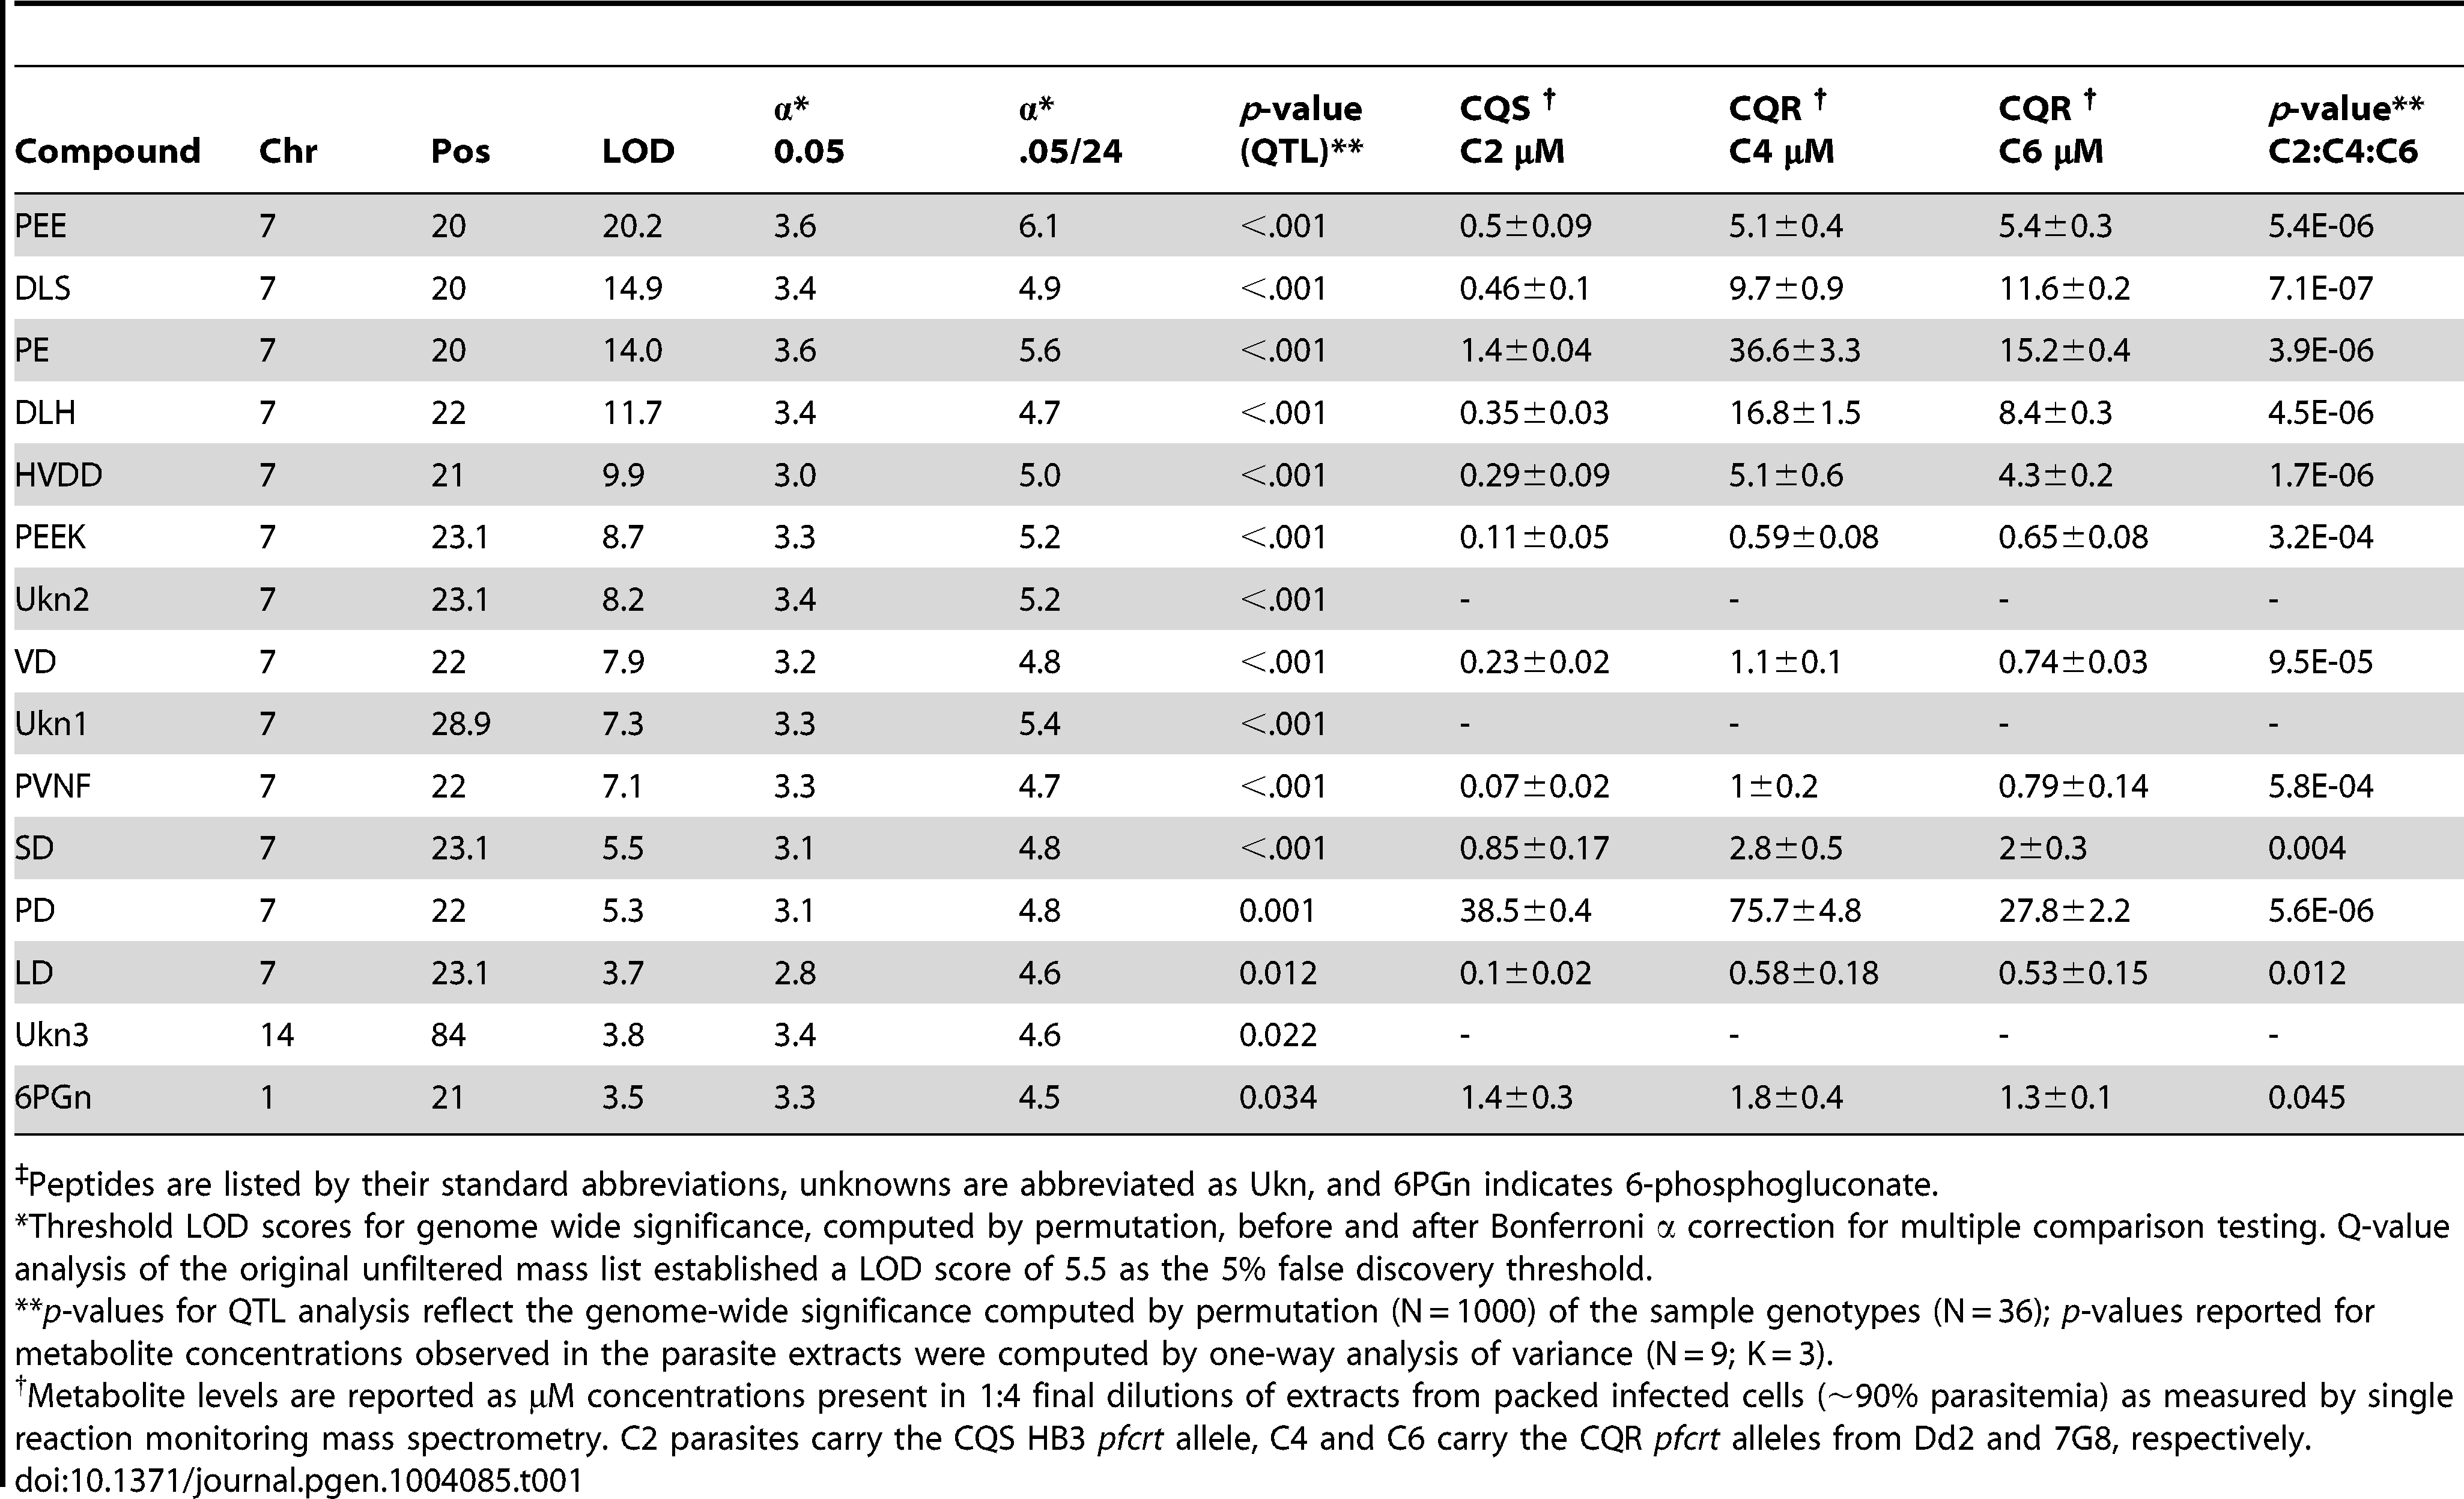 Genetic linkage by QTL and concentrations of metabolites<em class=&quot;ref&quot;>‡</em> (µM ± s.d.) observed in parasite extracts from chloroquine sensitive (CQS) and resistant (CQR) transgenic parasites.